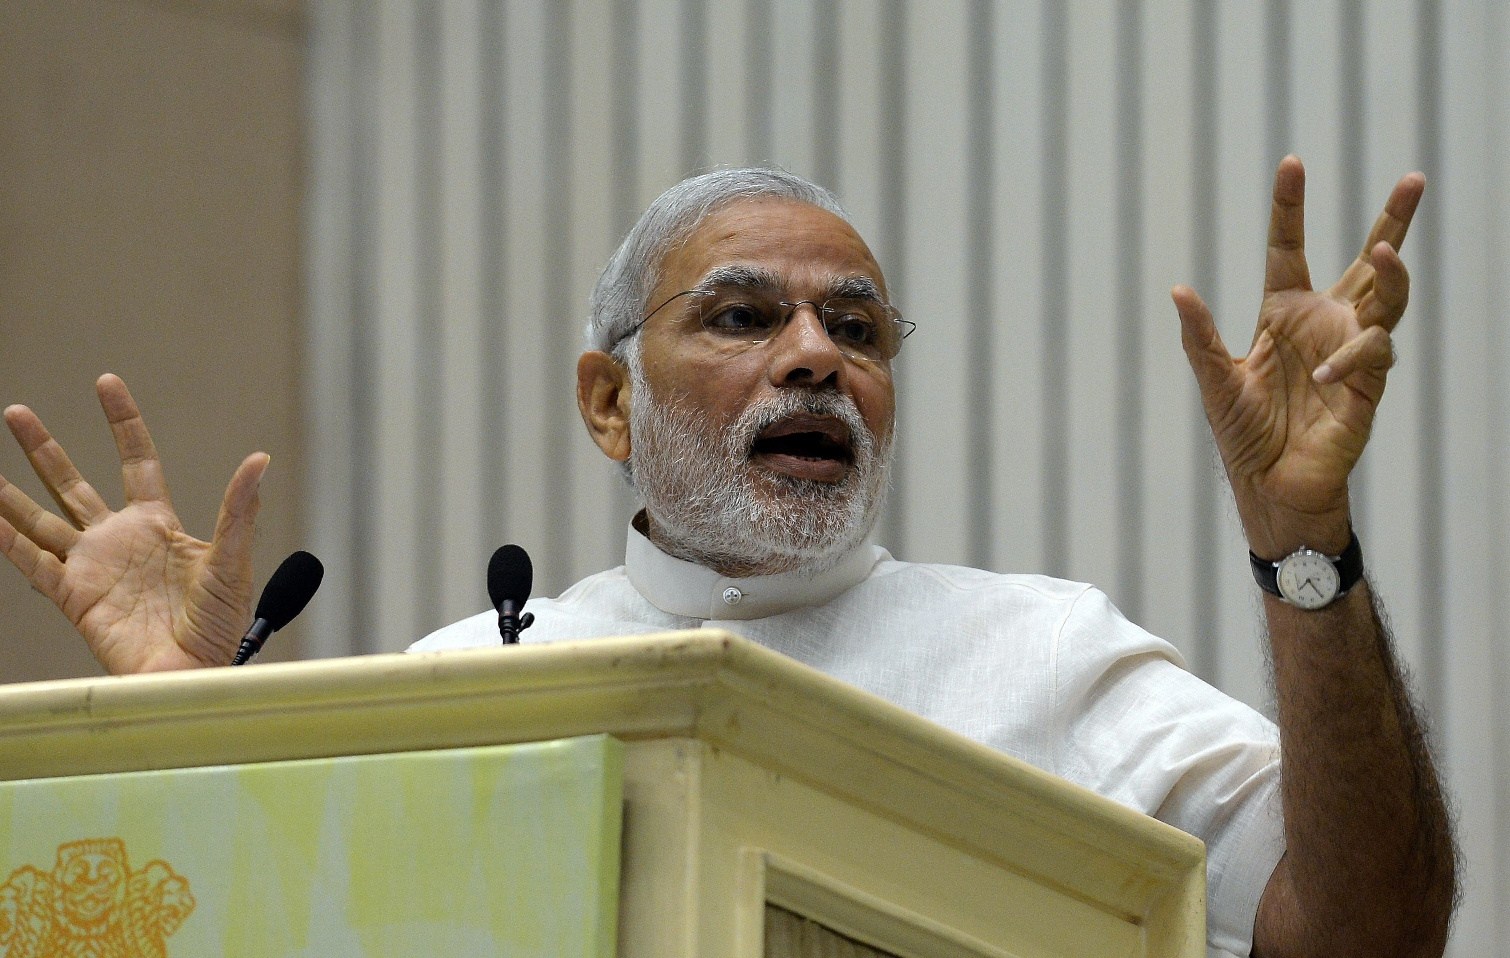 Indian prime minister says attack was deeply saddening [and] utterly condemnable. PHOTO: AFP